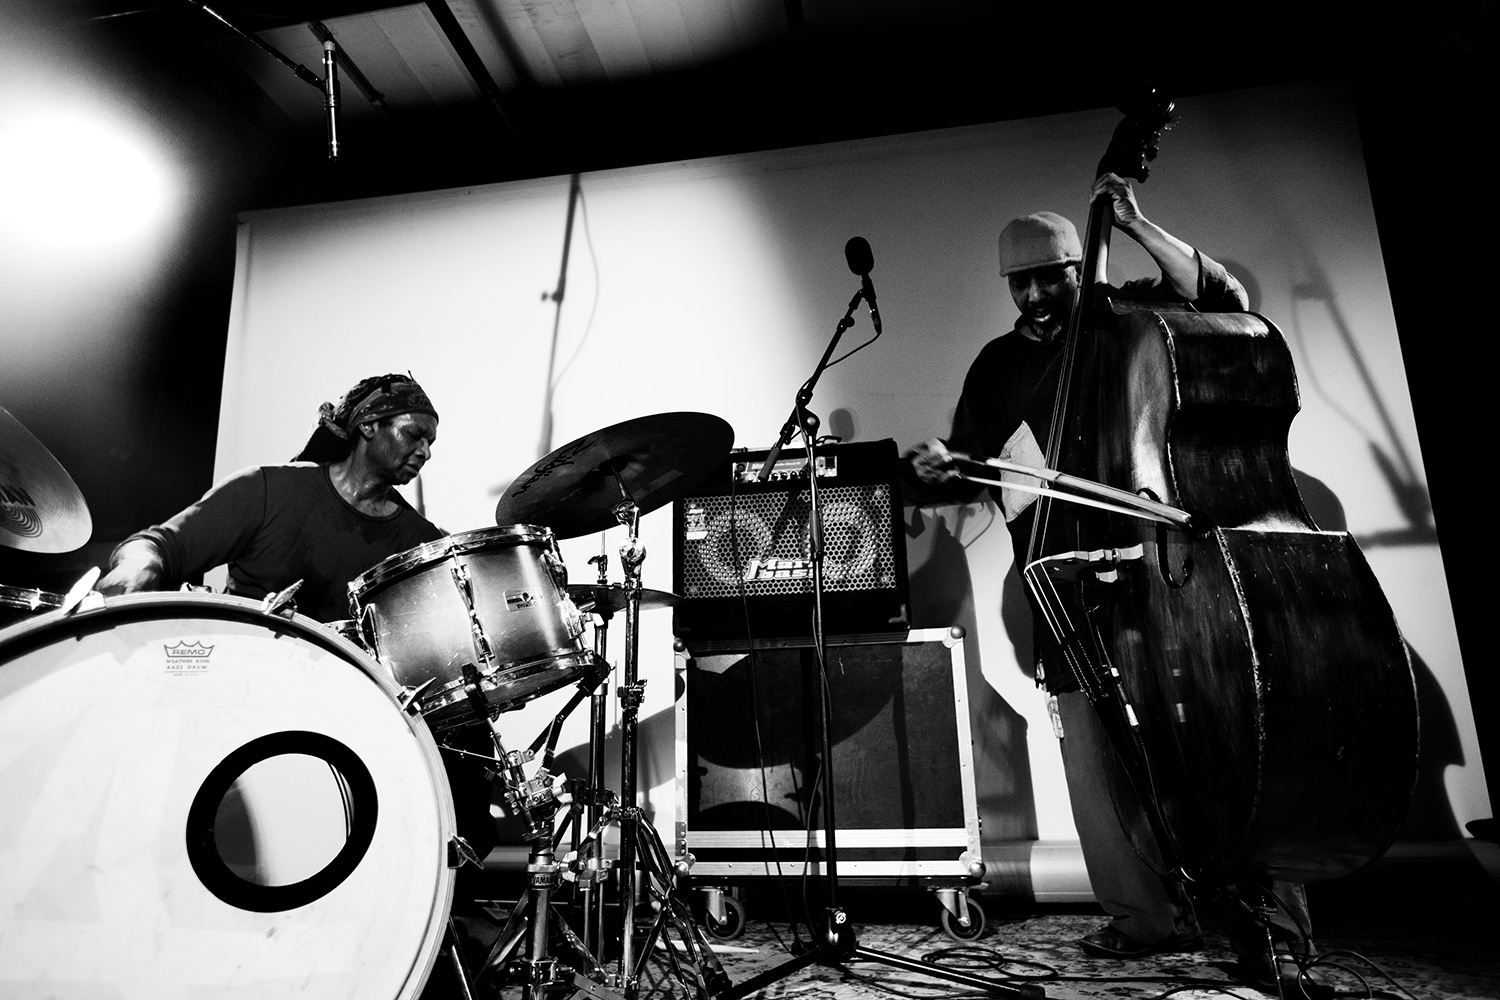 William Parker & Hamid Drake & John Dikeman by Laurent Orseau - Les Ateliers Claus - Brussels, Belgium - 2016-11-01 #2